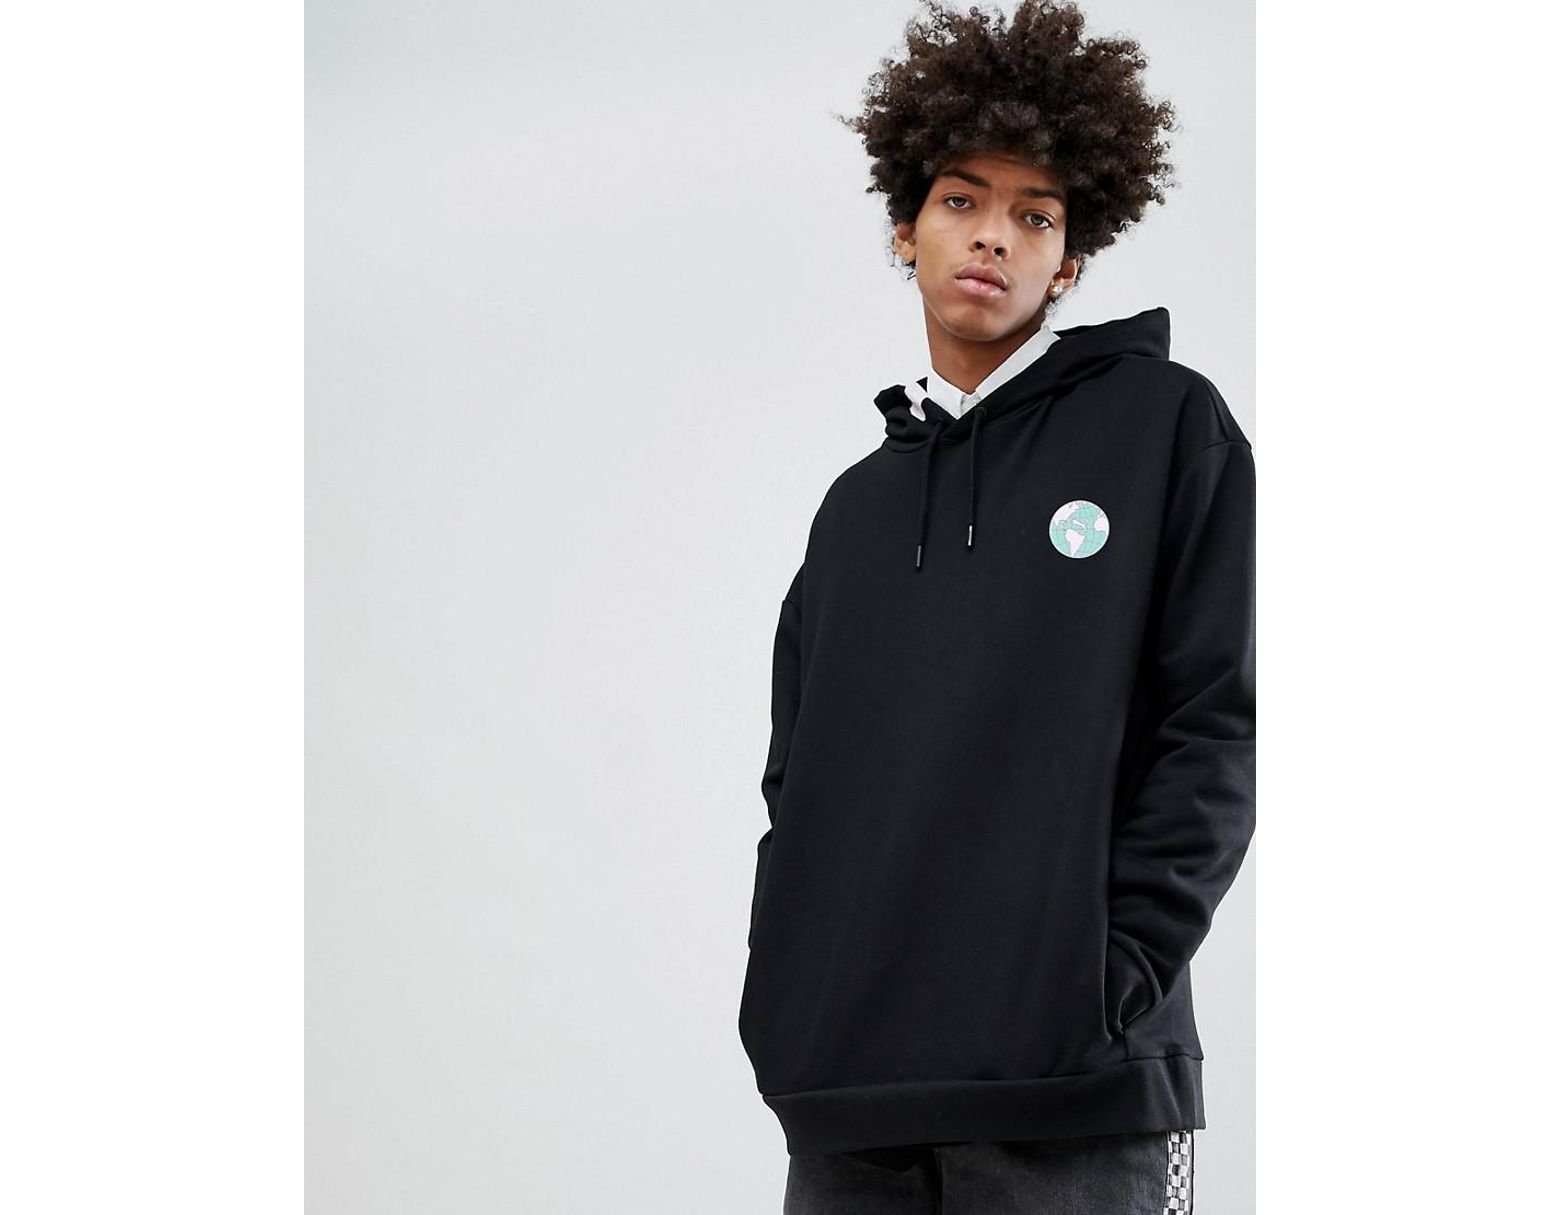 652a1c20eb PUMA Organic Cotton Hoodie With Back Print In Black Exclusive At Asos in  Black for Men - Lyst